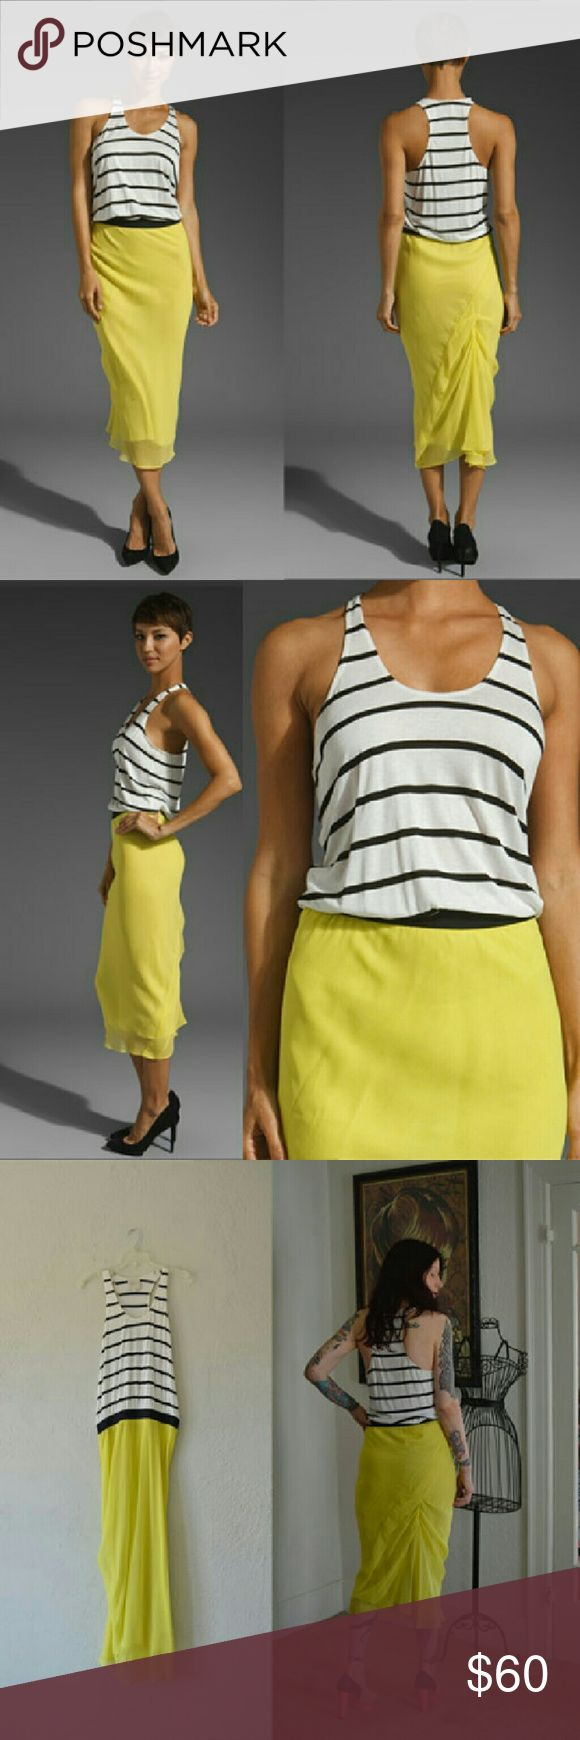 NWOT Mason by Michelle Mason striped tank dress Michelle Mason is an independent designer, adored by celebrities, and stocked at retailers such as Saks Fifth Avenue, Net-a-Porter, Revolve Clothing, and many others. Her creations are known for sexy, body-skimming fits and a playful sensibility -- just like this colorblocked jersey and silk dress. Lined silk skirt features a shirred, fish-tail hem. Blousey jersey tank, with a grosgrain waistband.  Never worn. Mason by Michelle Mason  Dresses…